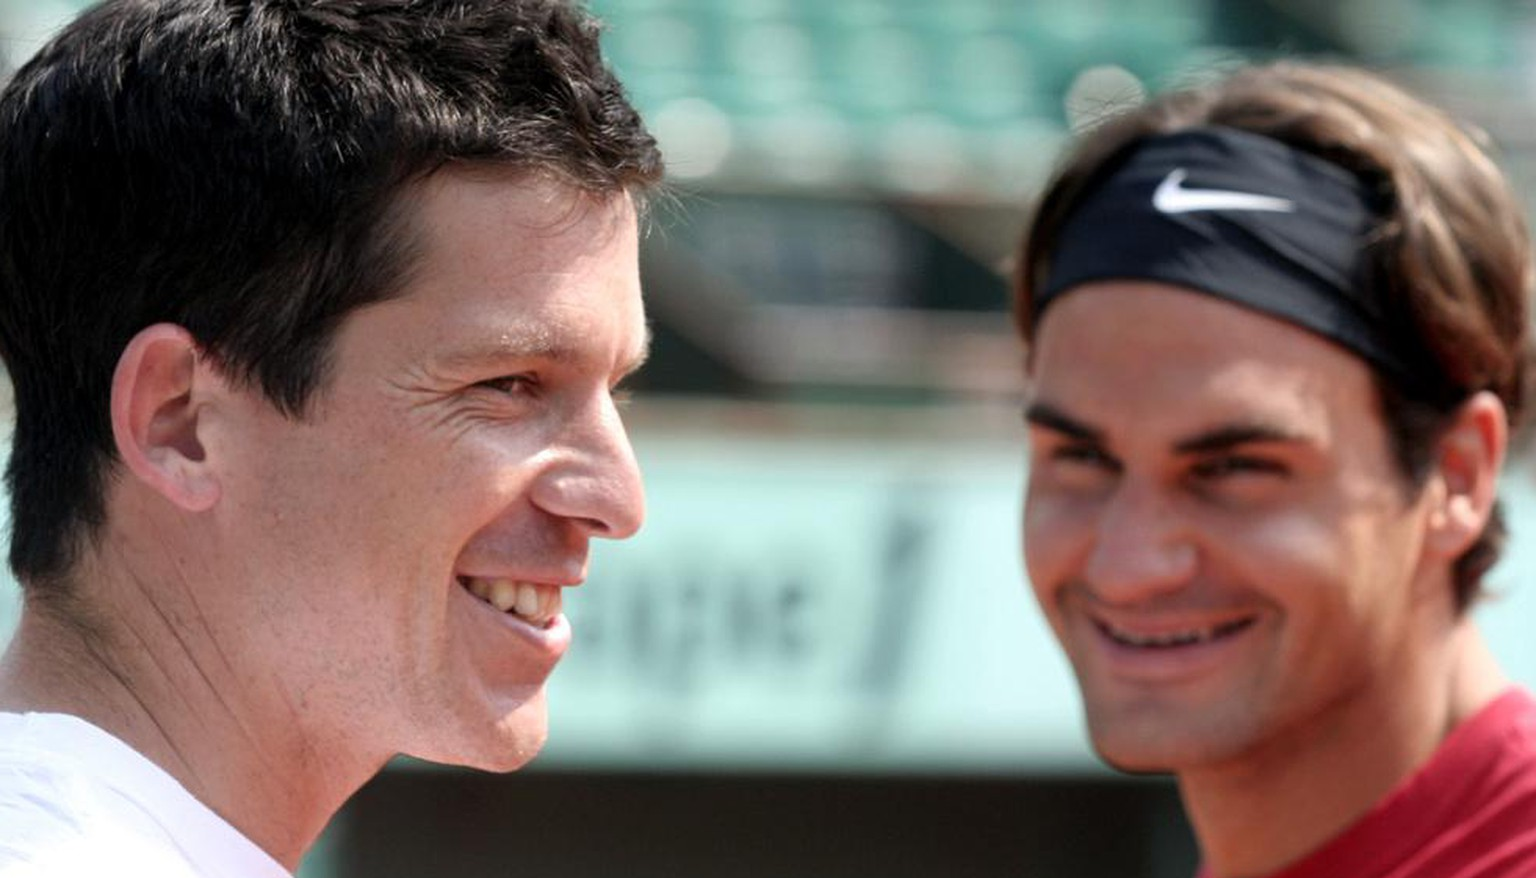 Britain's Tim Henman, left, laughs with Switzerland's Roger Federer, center, and Finland's Jarkko Nieminen during a training session for the French Open tennis, at the Roland Garros stadium in Paris, Friday May 25, 2007, just two days before the start of the tournament. (AP Photo/Bertrand Combaldieu)